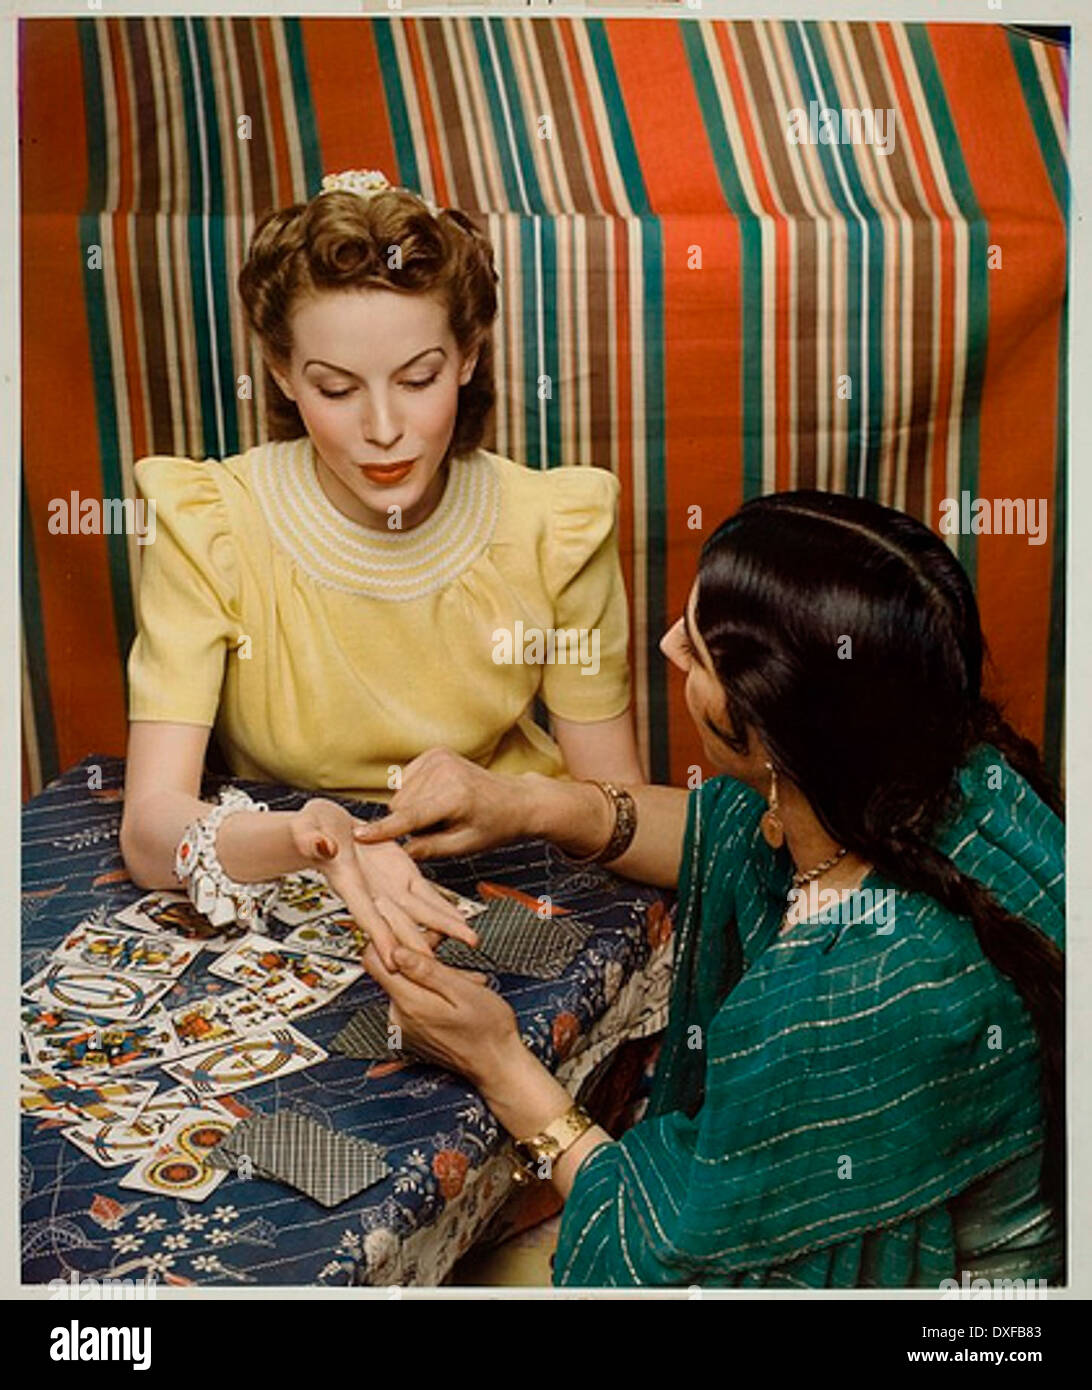 MCCALL'S MAGAZINE, STYLE & BEAUTY COVER, FORTUNE TELLER Stock Photo